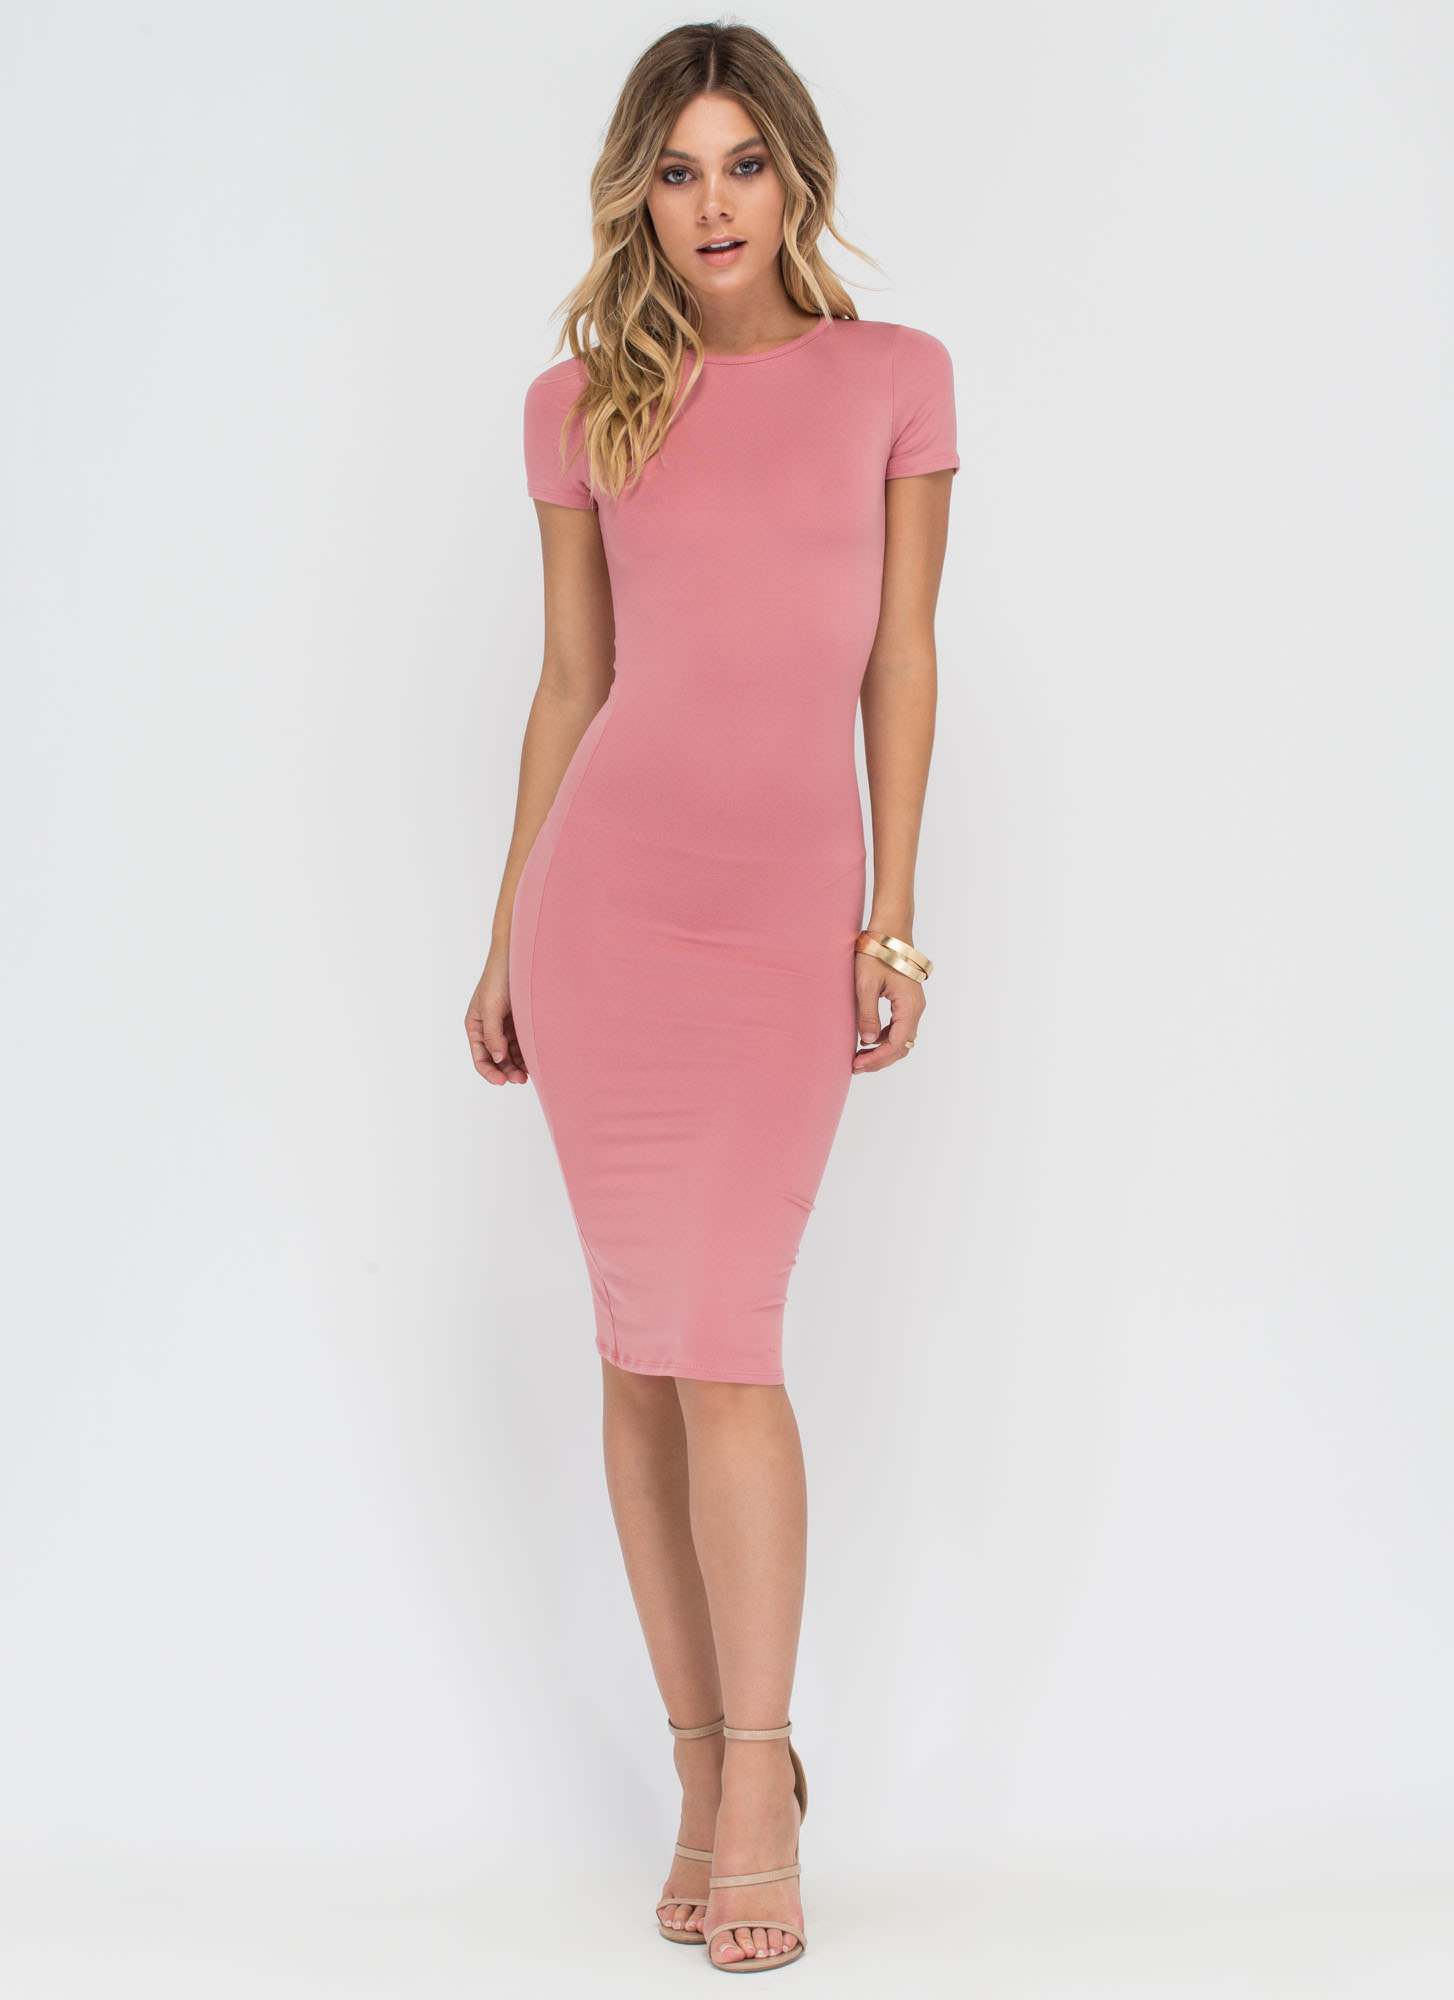 Light Pink Dress With Black Heels